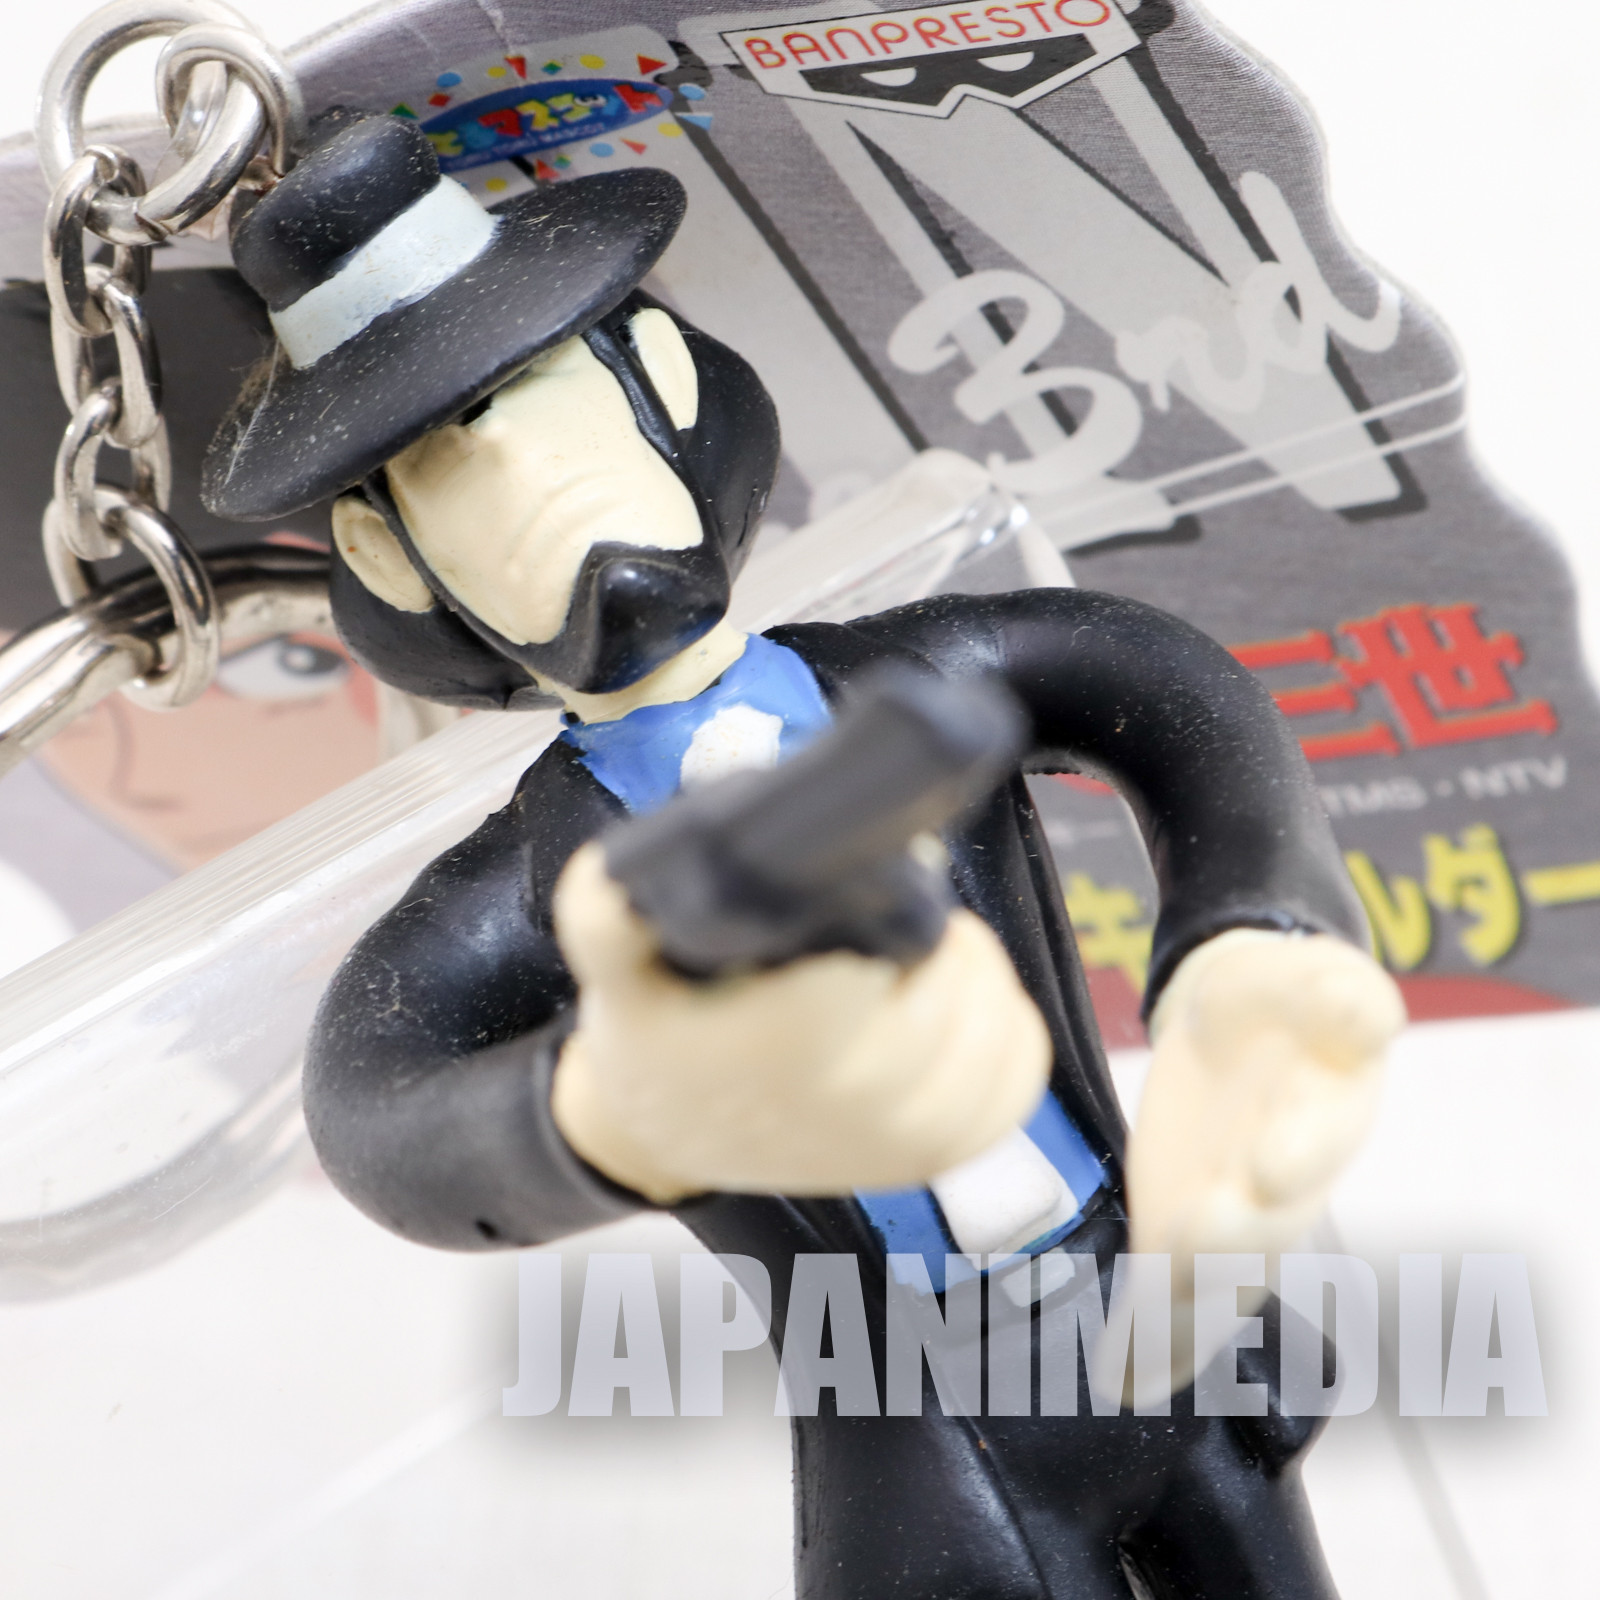 Lupin the Third (3rd) Daisuke Jigen Bendable Figure Keychain JAPAN ANIME MANGA